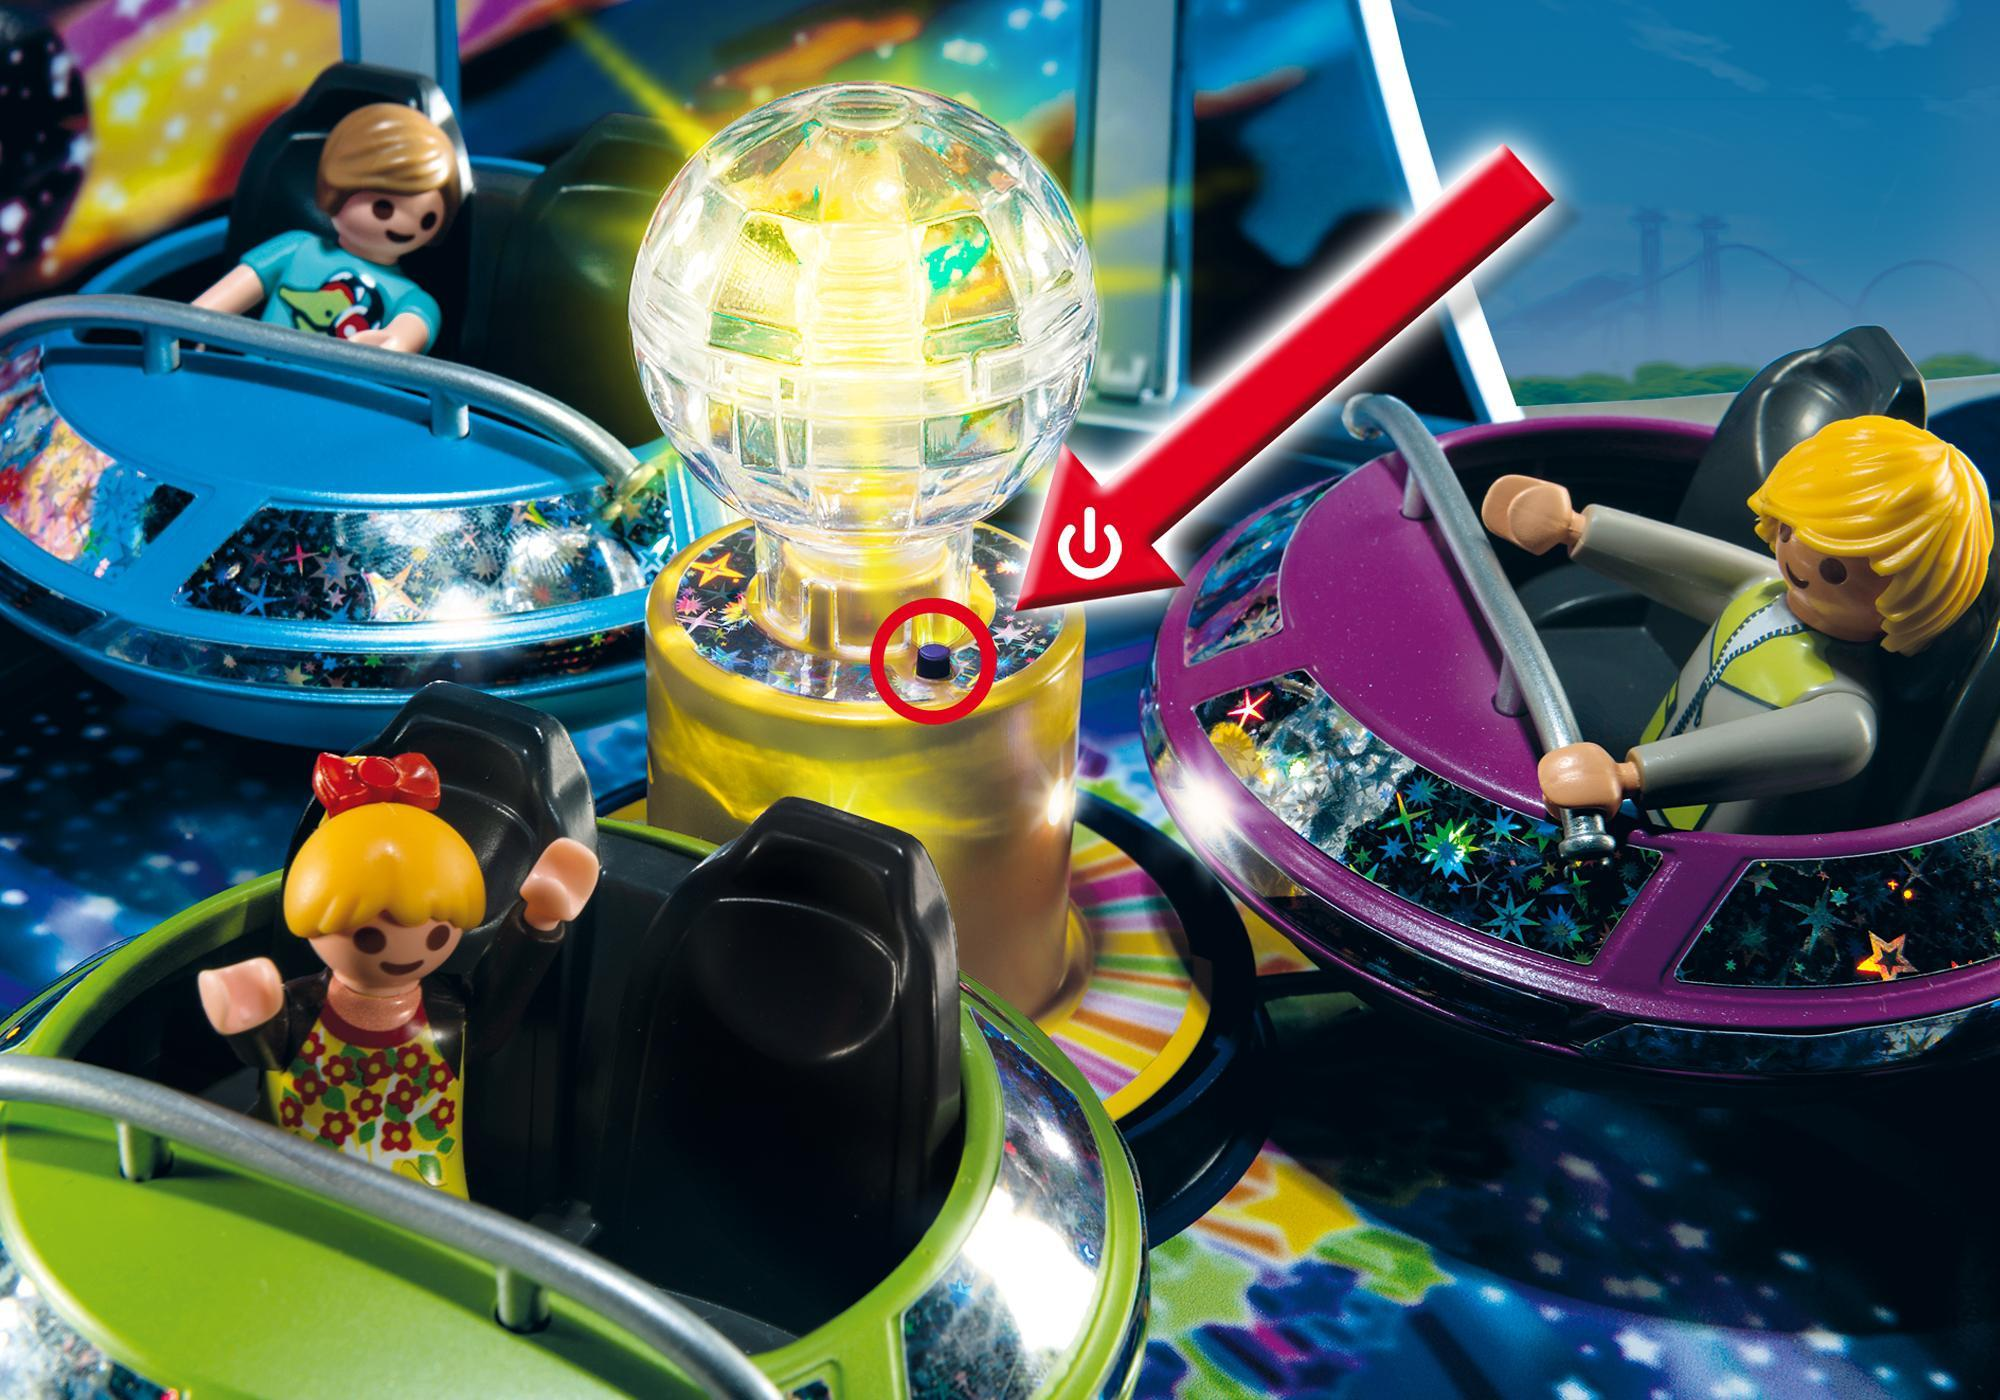 http://media.playmobil.com/i/playmobil/5554_product_extra2/Spinning Spaceship Ride with Lights